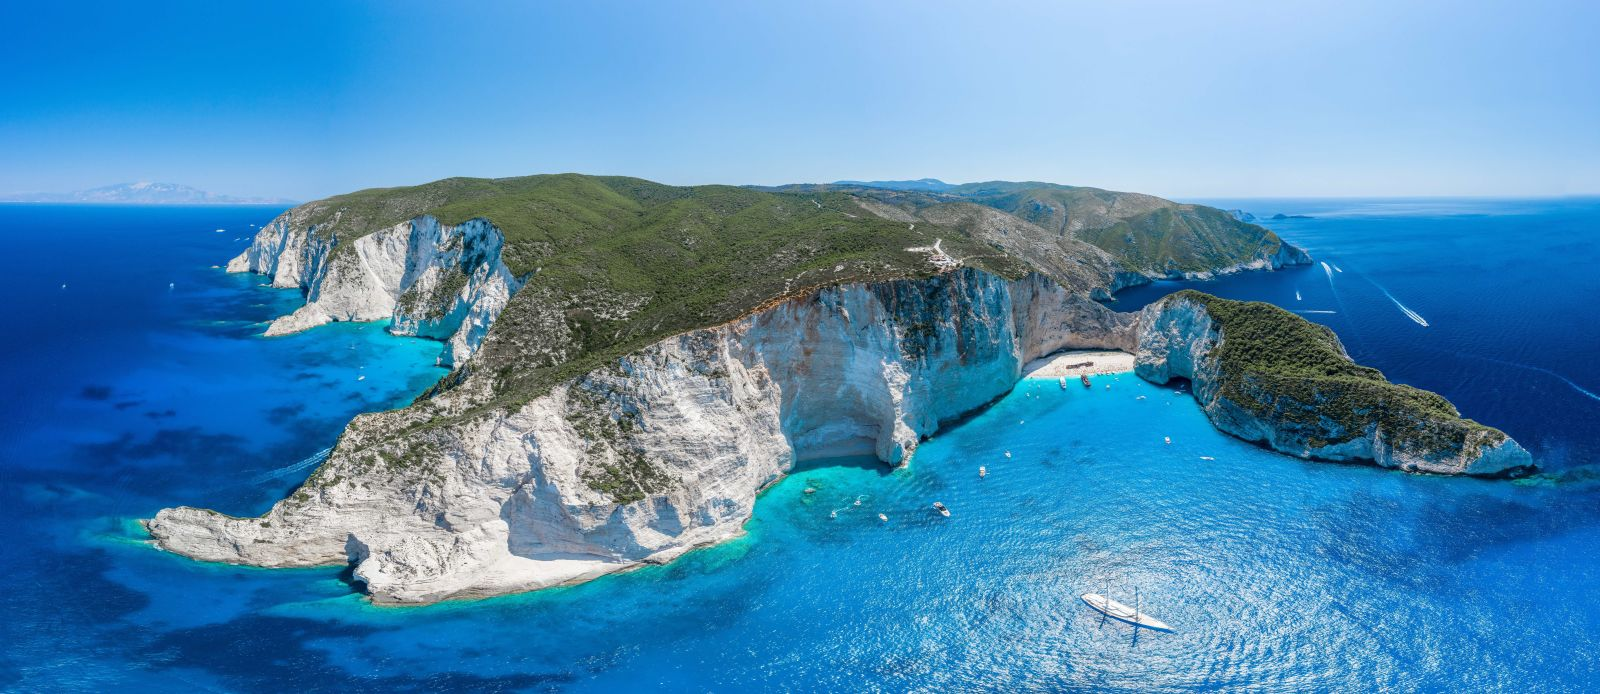 Europe, Greece, Ionian Islands